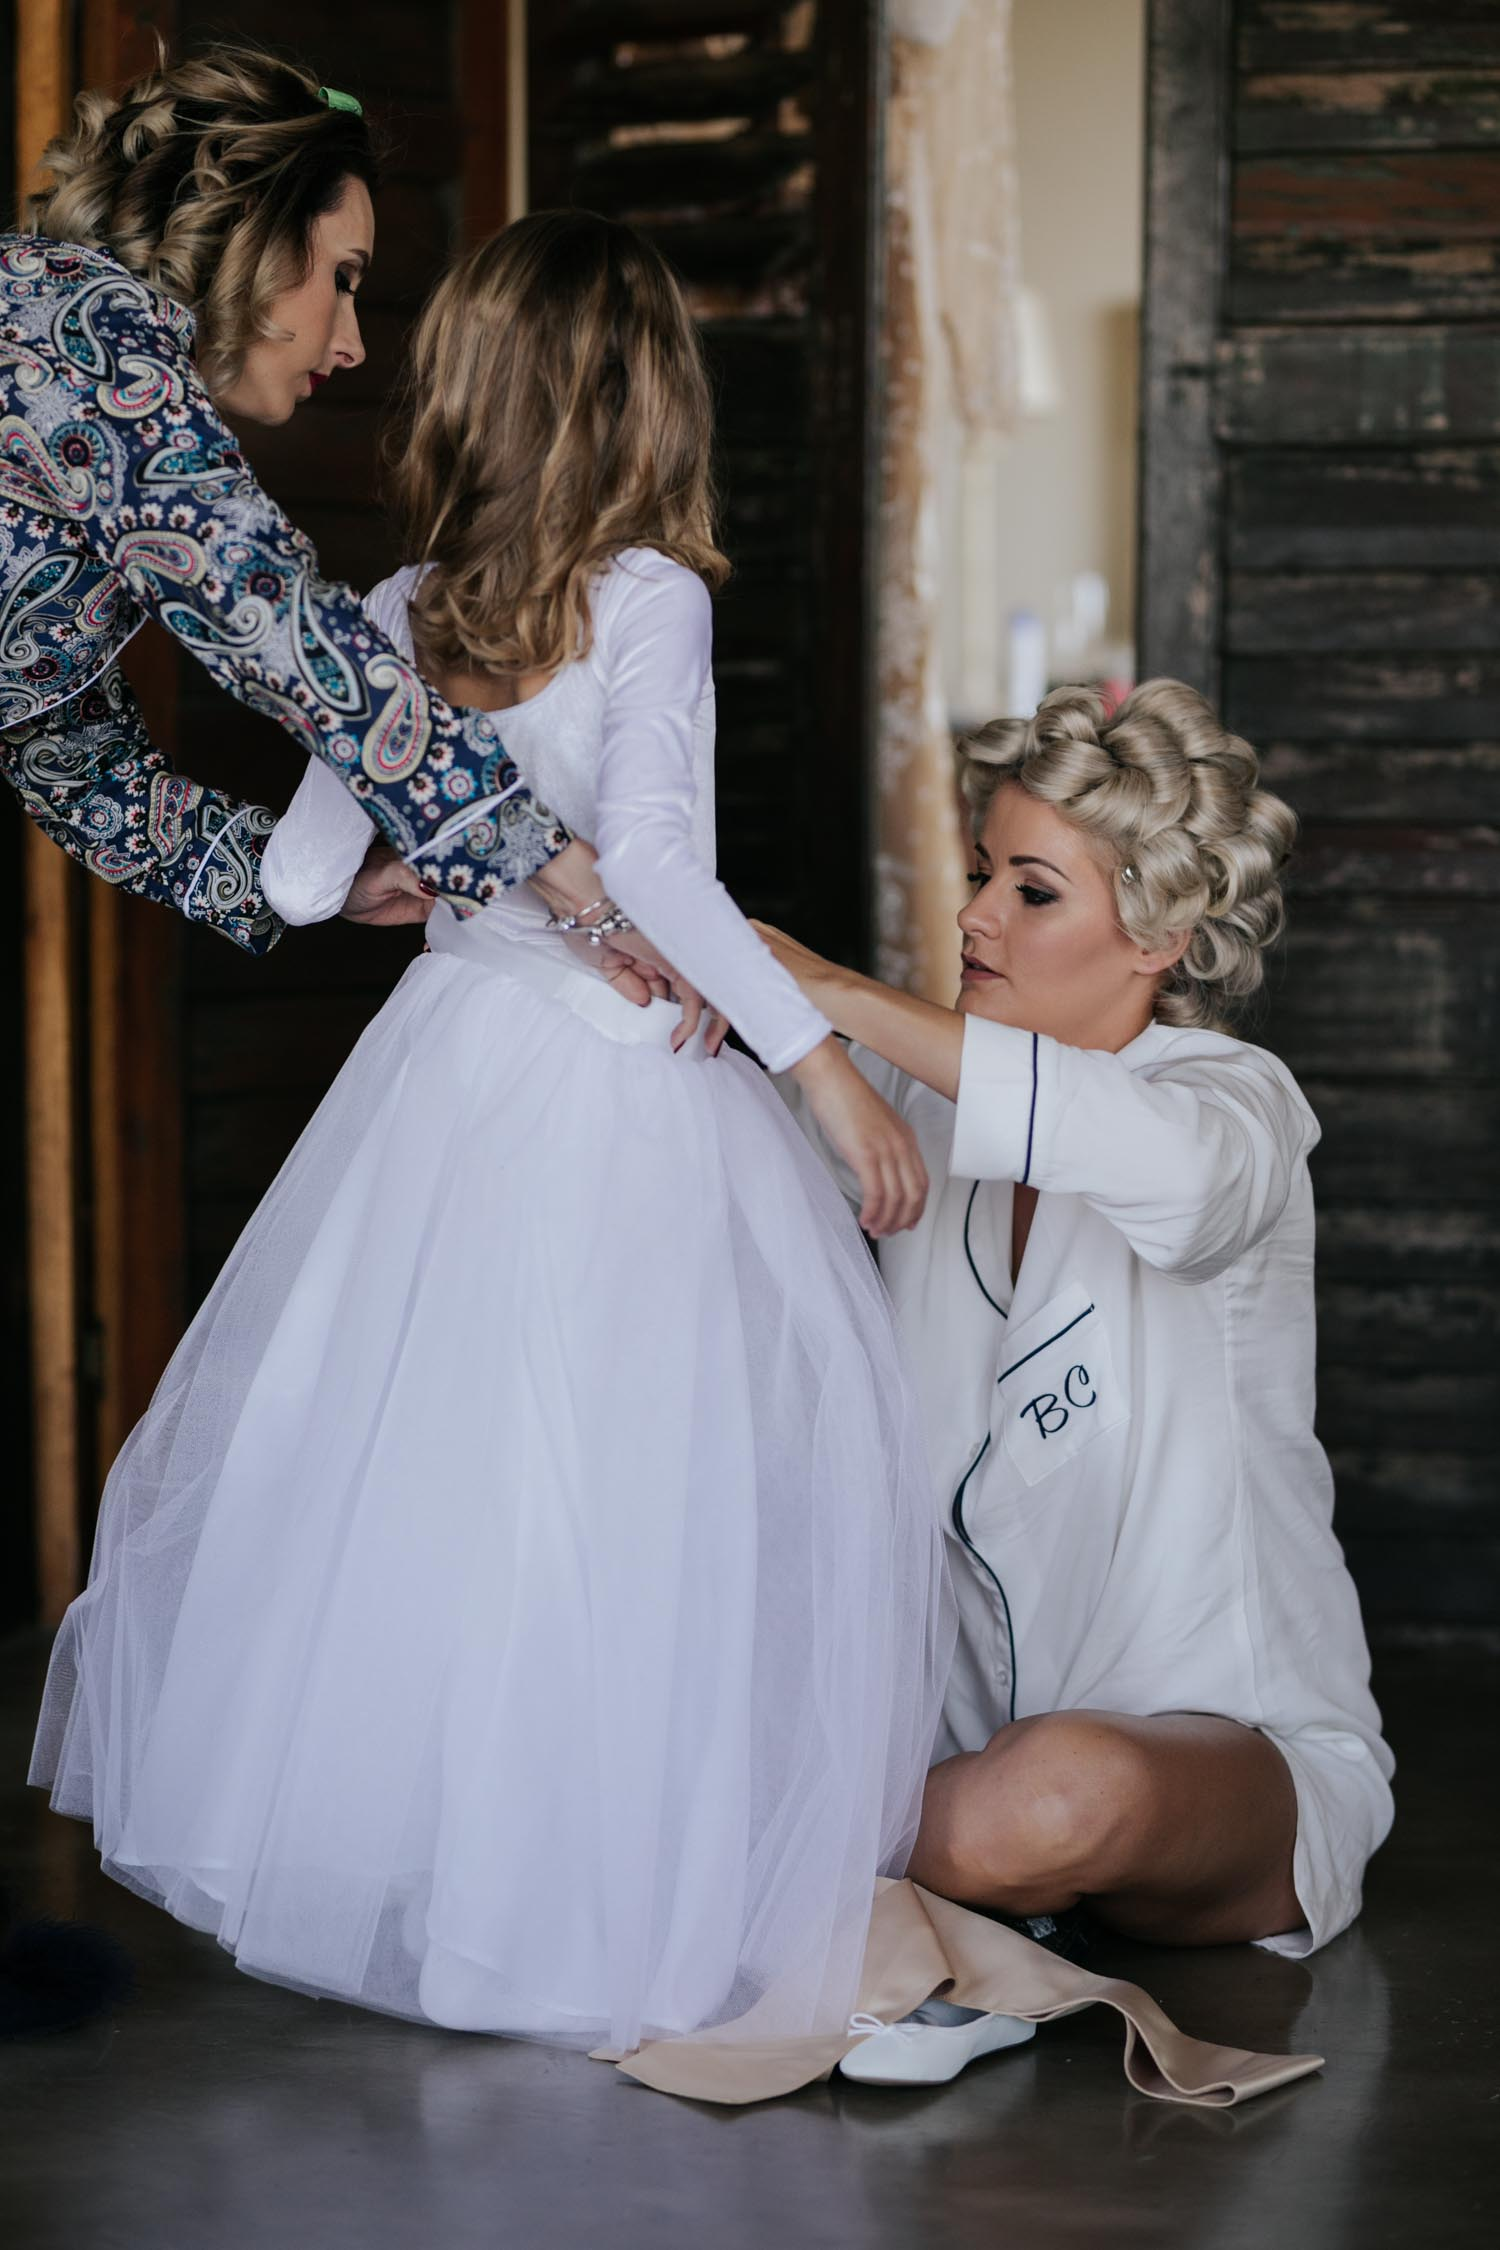 Bride helping the flower girl get ready on her wedding day